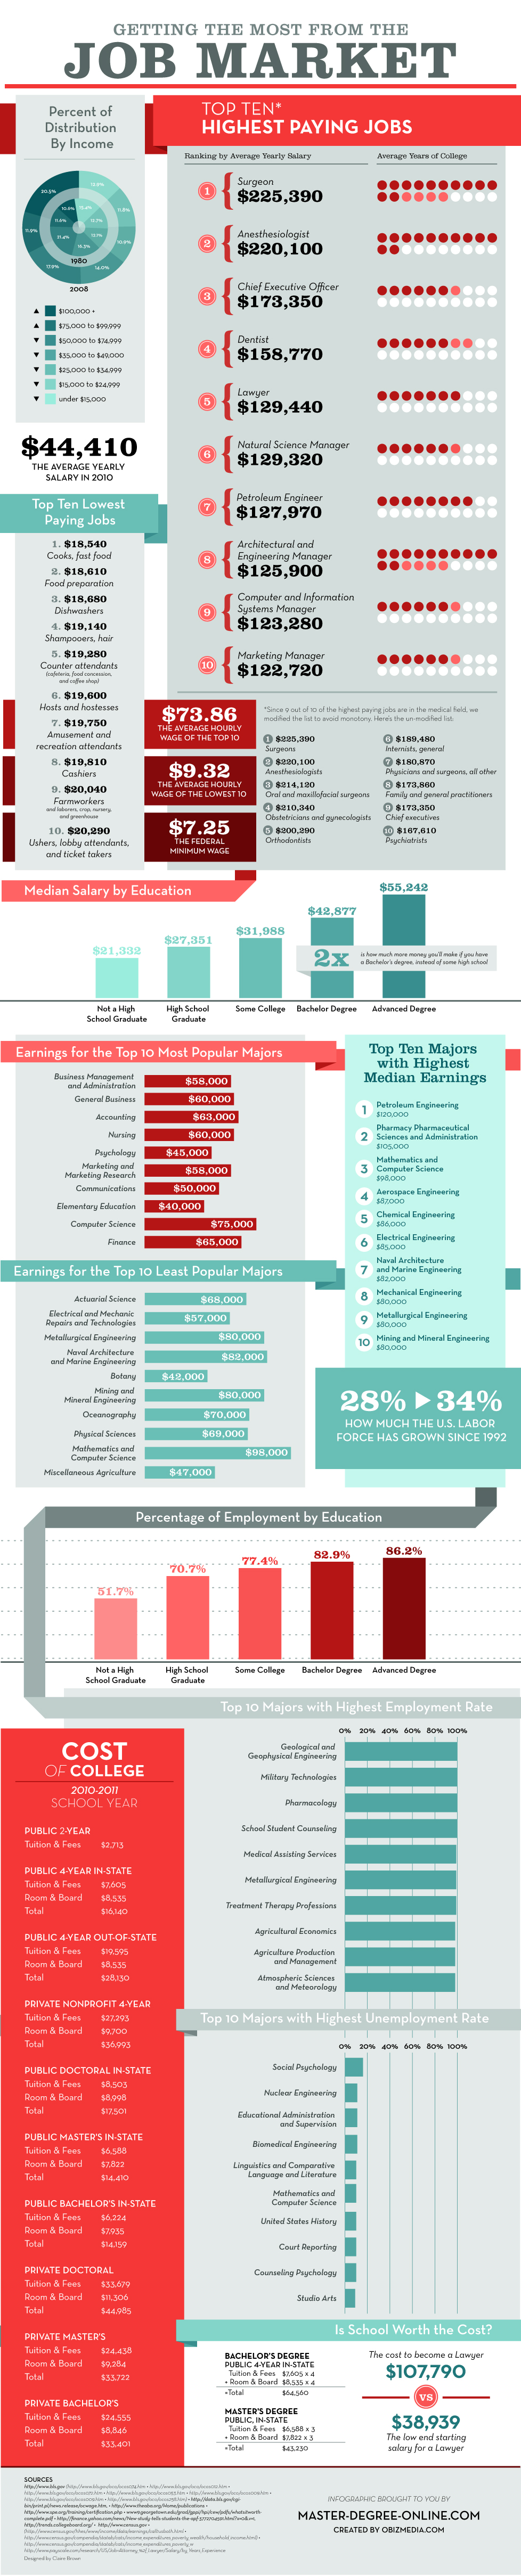 Infographic: Getting the Most from the Job Market